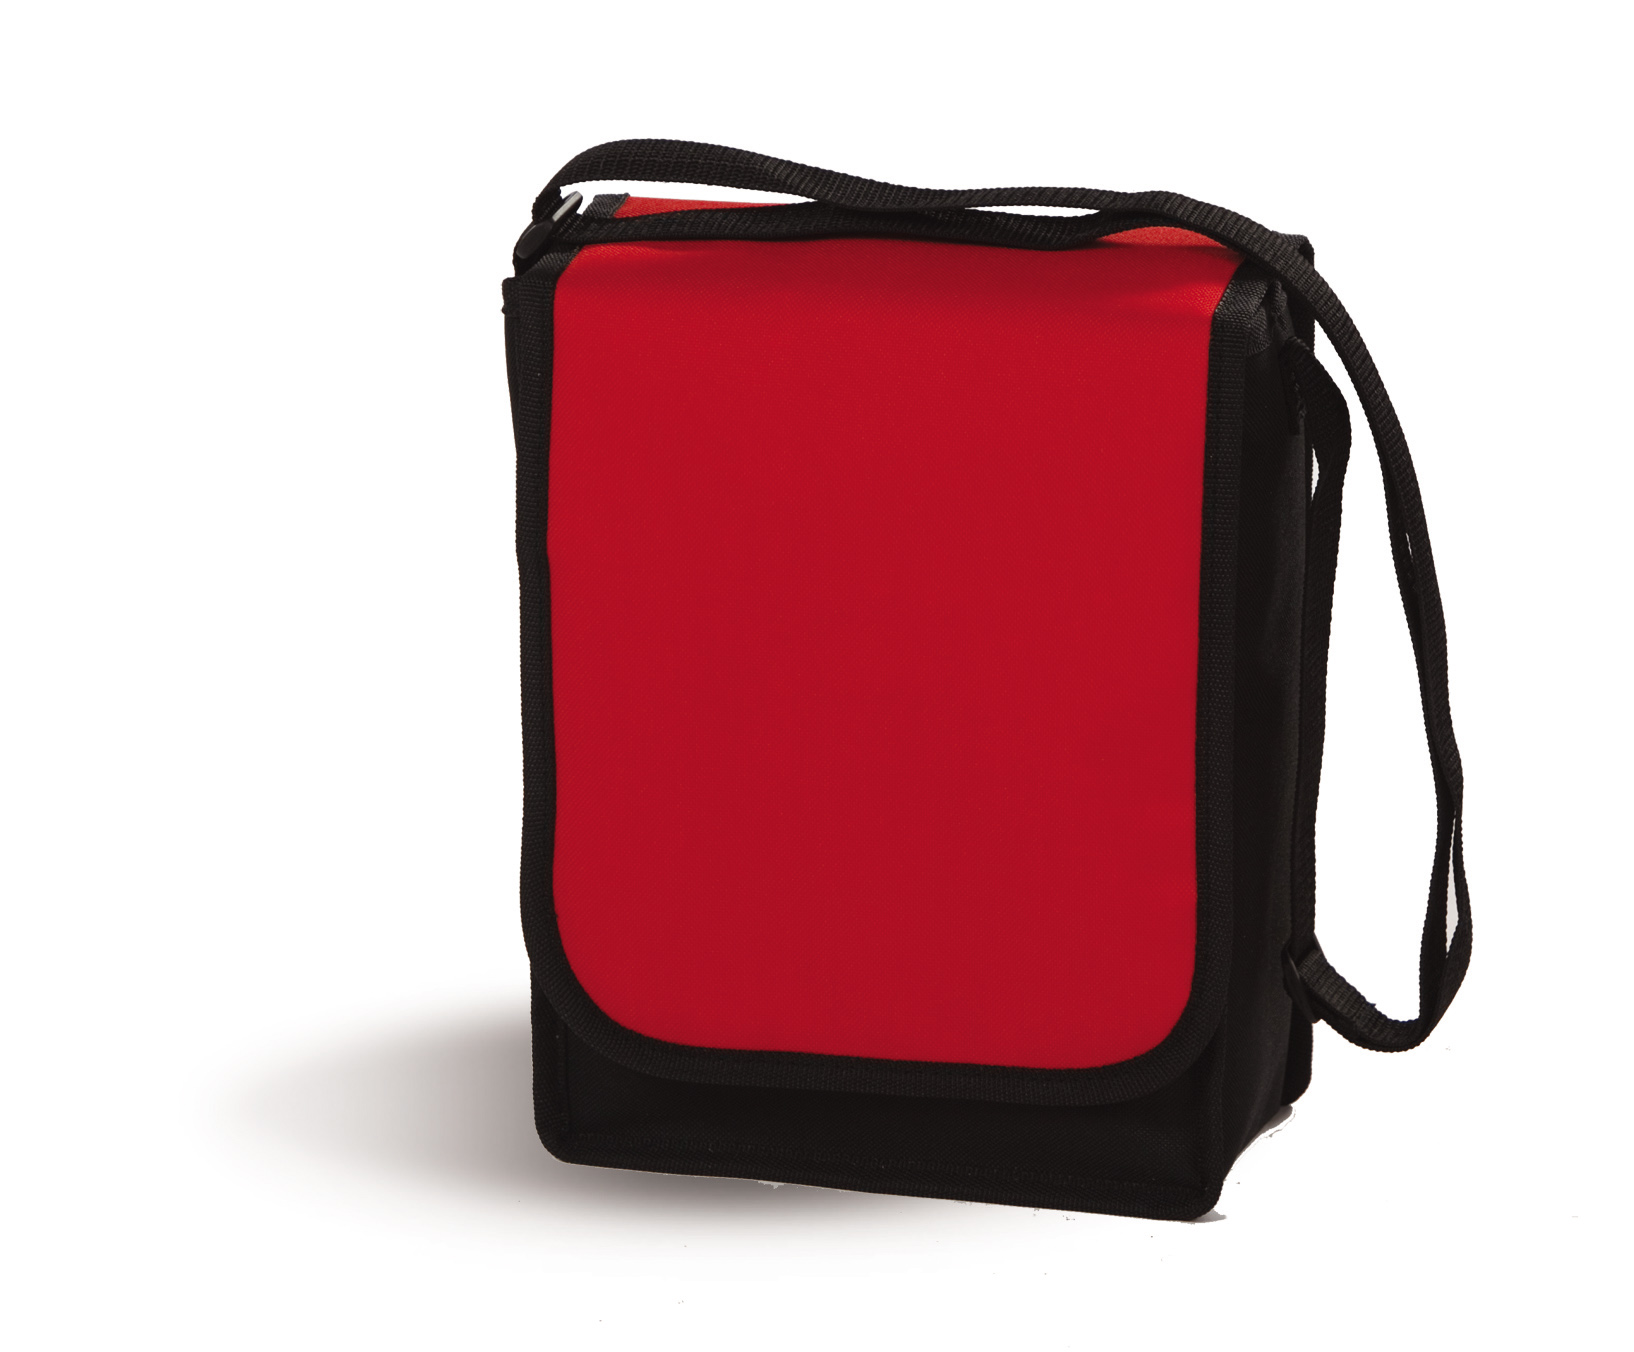 2104_psm-444r-galaxy-lunch-bag-red-black